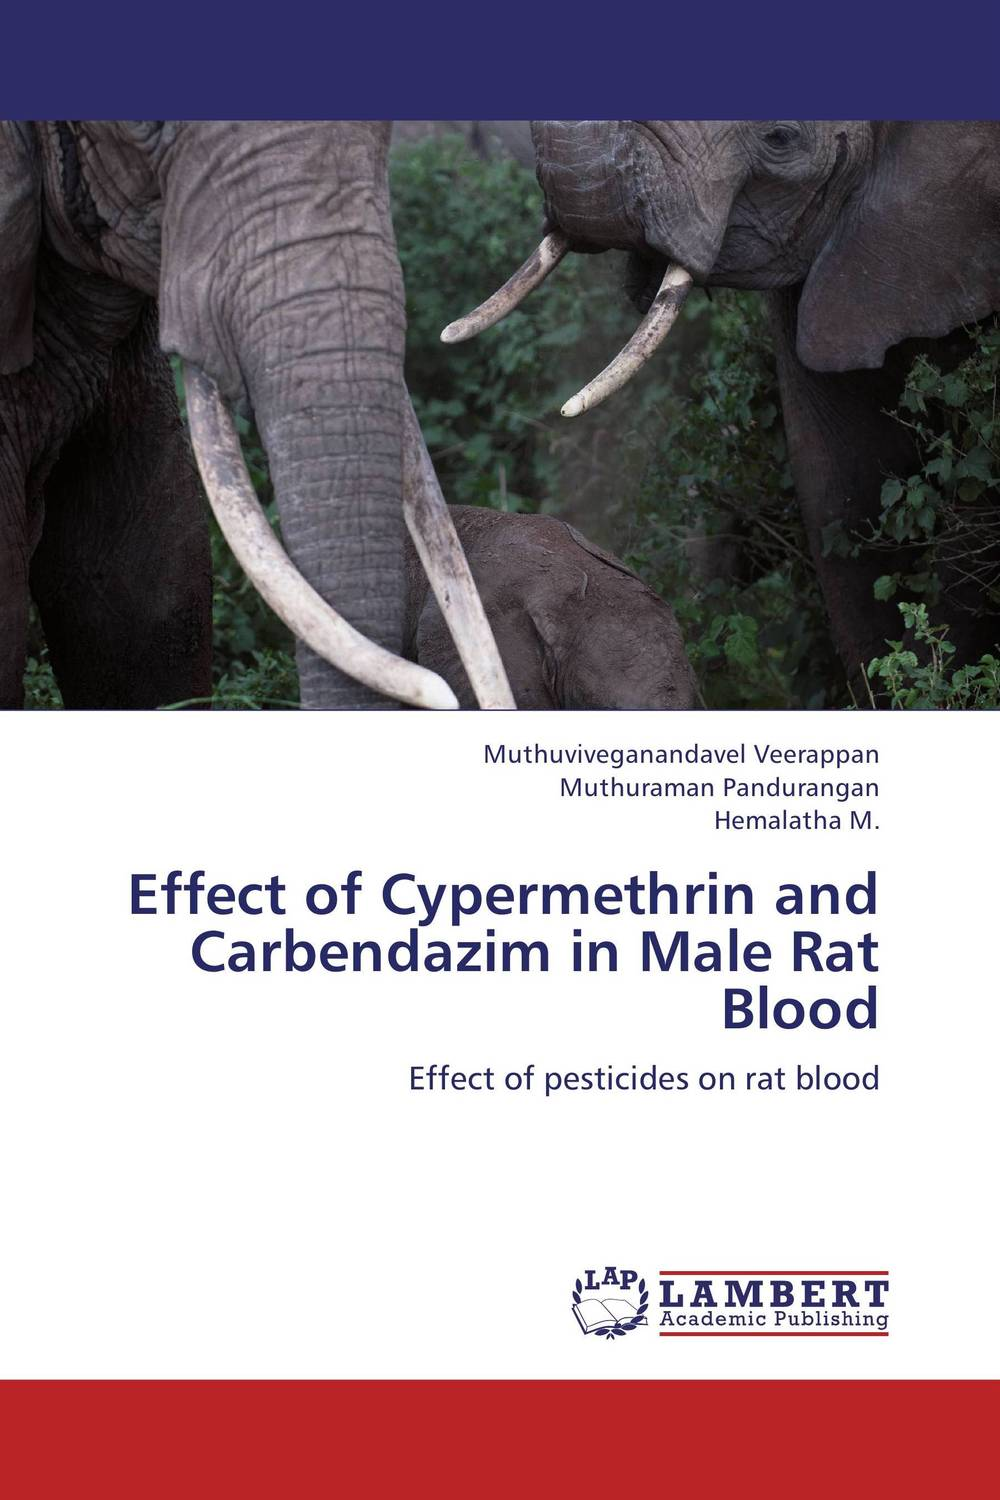 Effect of Cypermethrin and Carbendazim in Male Rat Blood